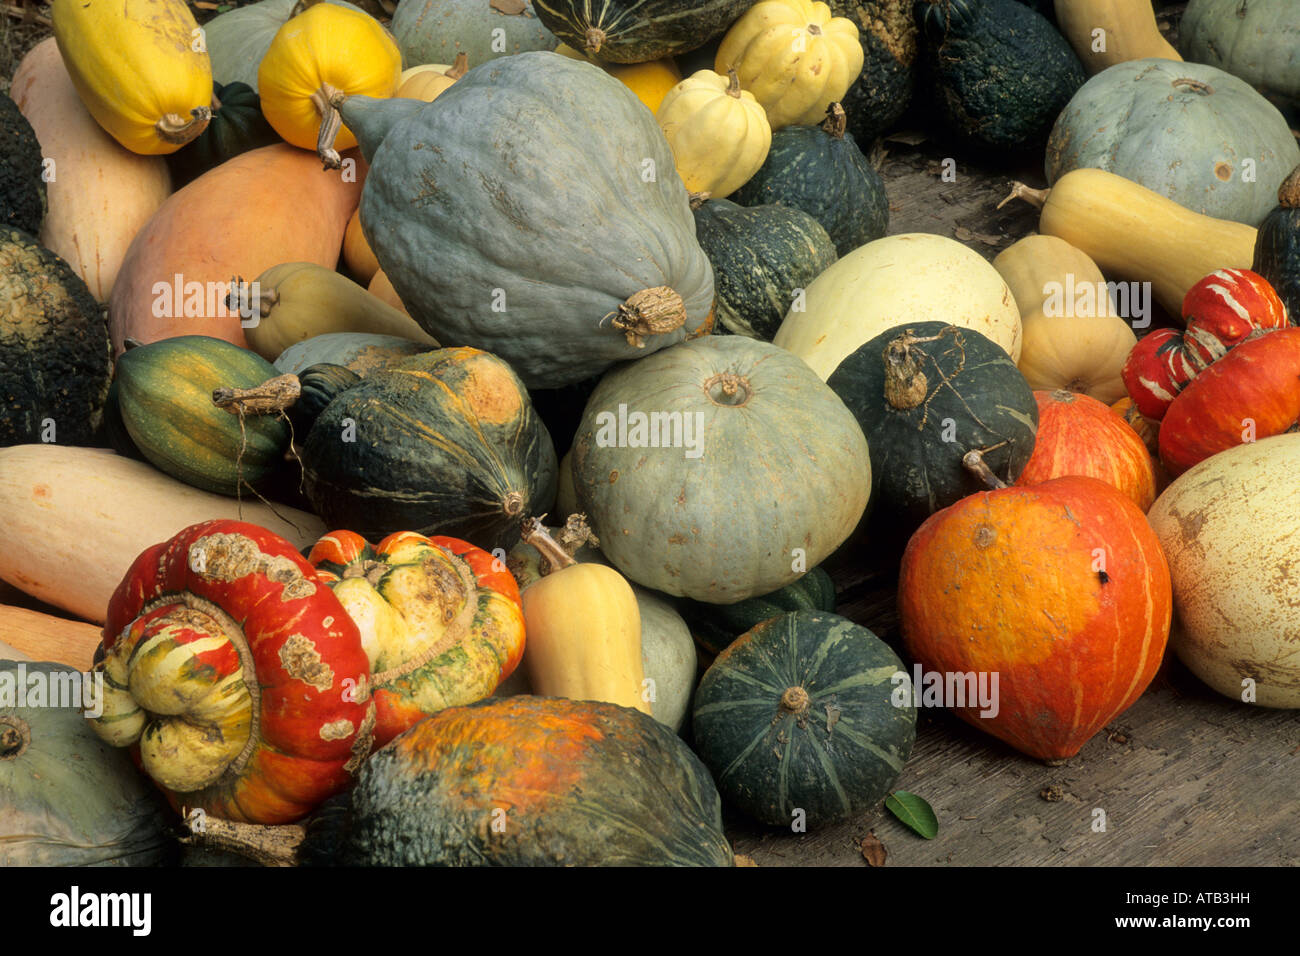 Gourds Gowans Oak Tree produce stand near Philo Anderson Valley Mendocino County California - Stock Image